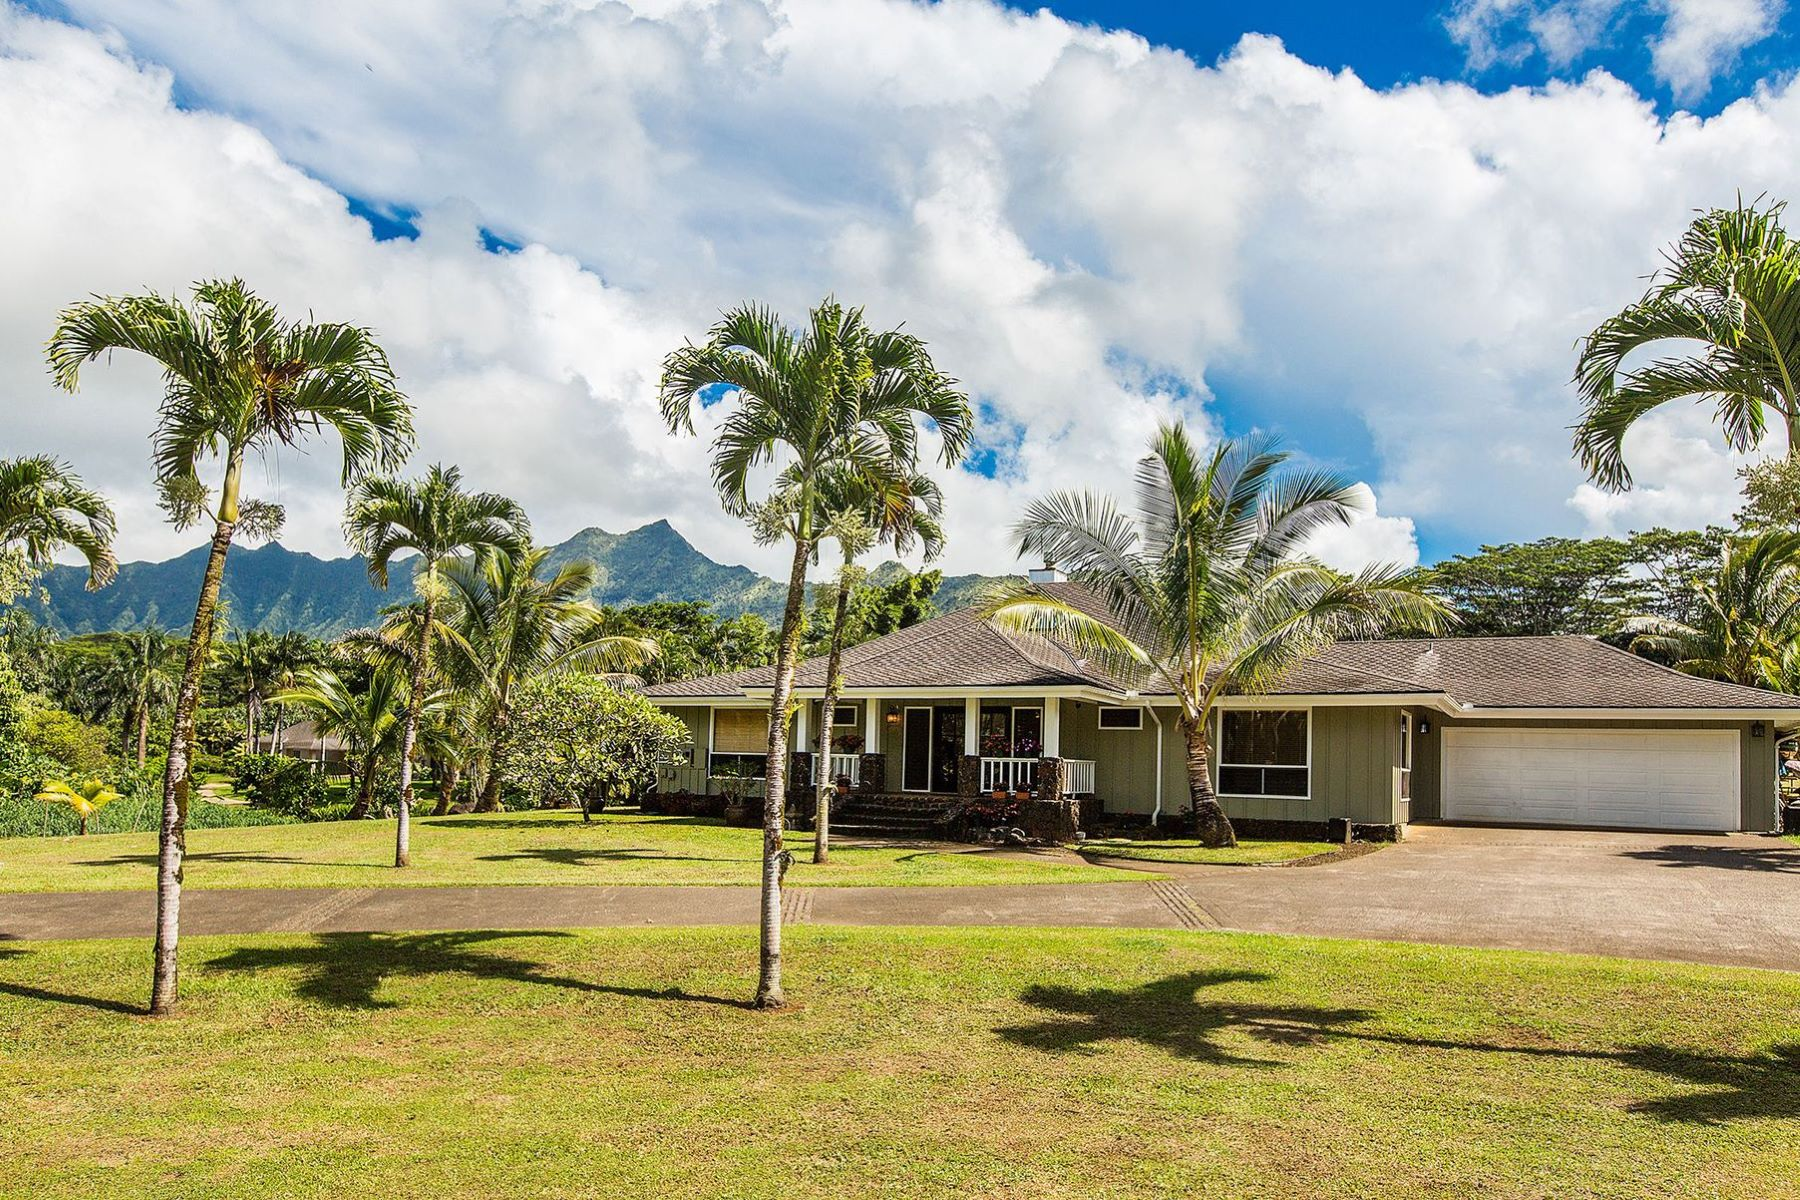 Single Family Homes for Sale at 6127 KAHILIHOLO RD #C HANALEI, HI 96754 6127 KAHILIHOLO RD #C Hanalei, Hawaii 96754 United States